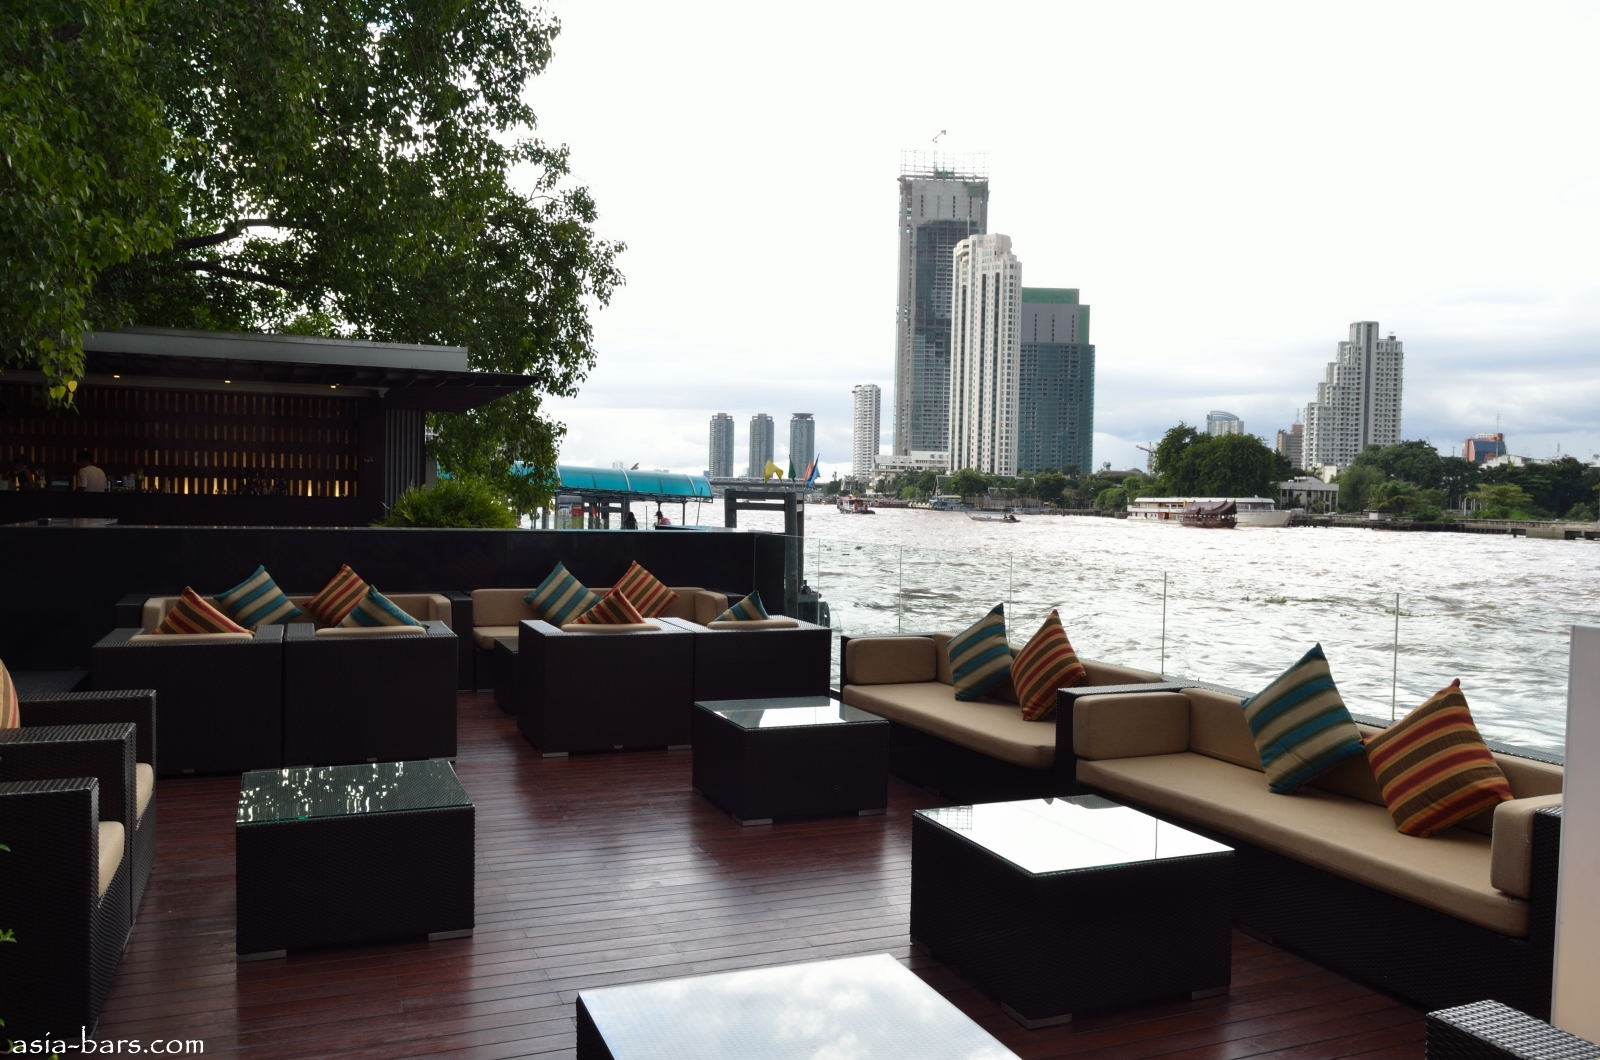 Sambal bar and grill contemporary asian dining on bangkok for Terrace bar grill